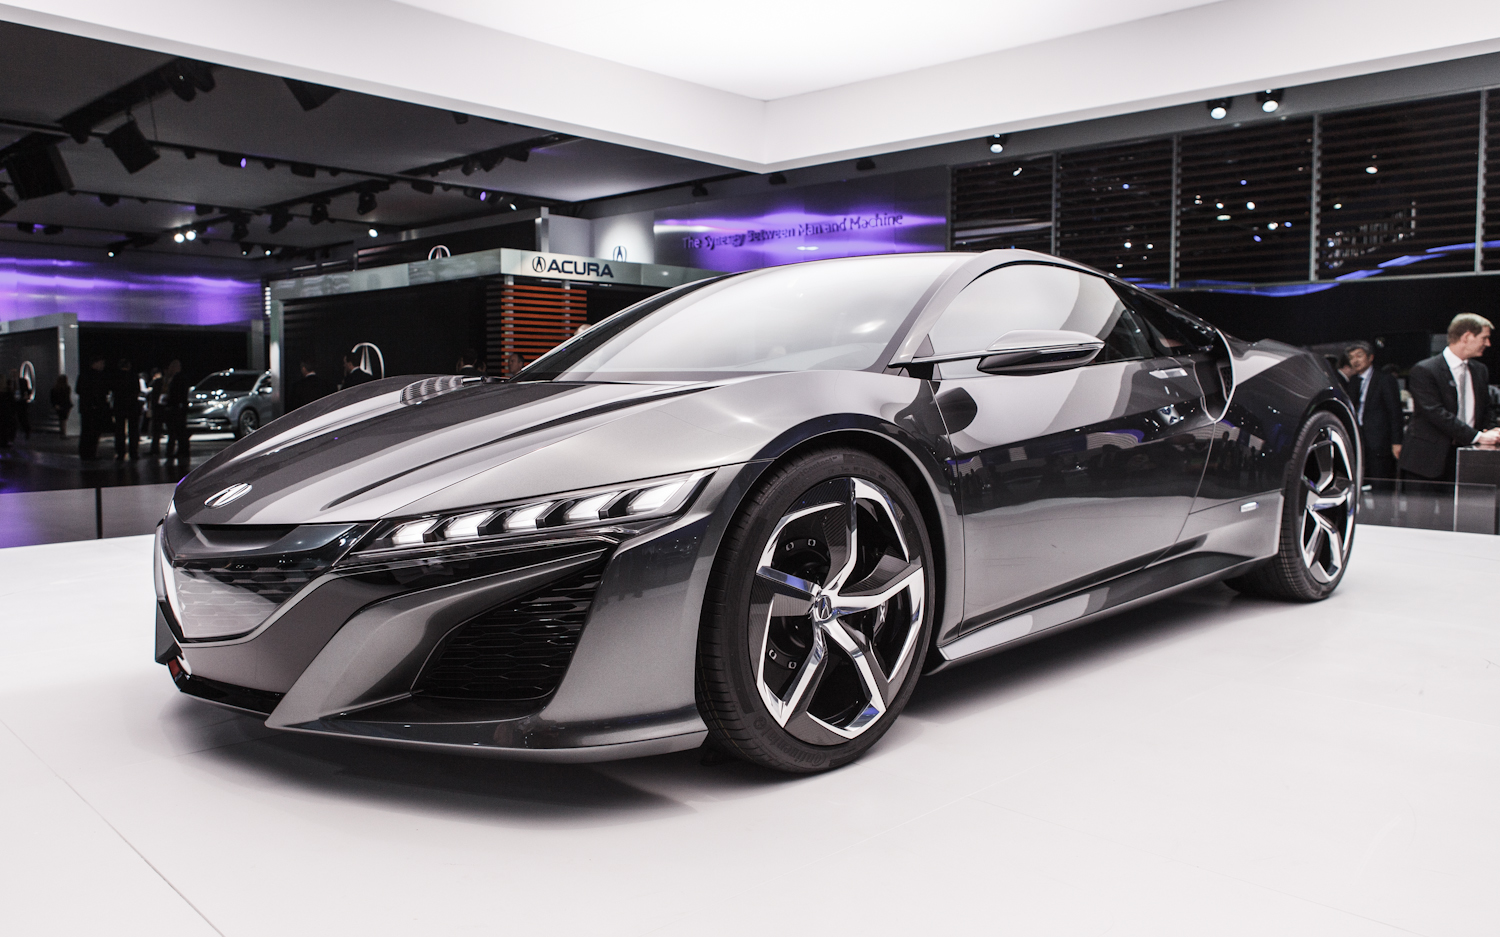 Honda U.K. Already Taking Pre-Orders for 2015 Acura NSX - Motor Trend